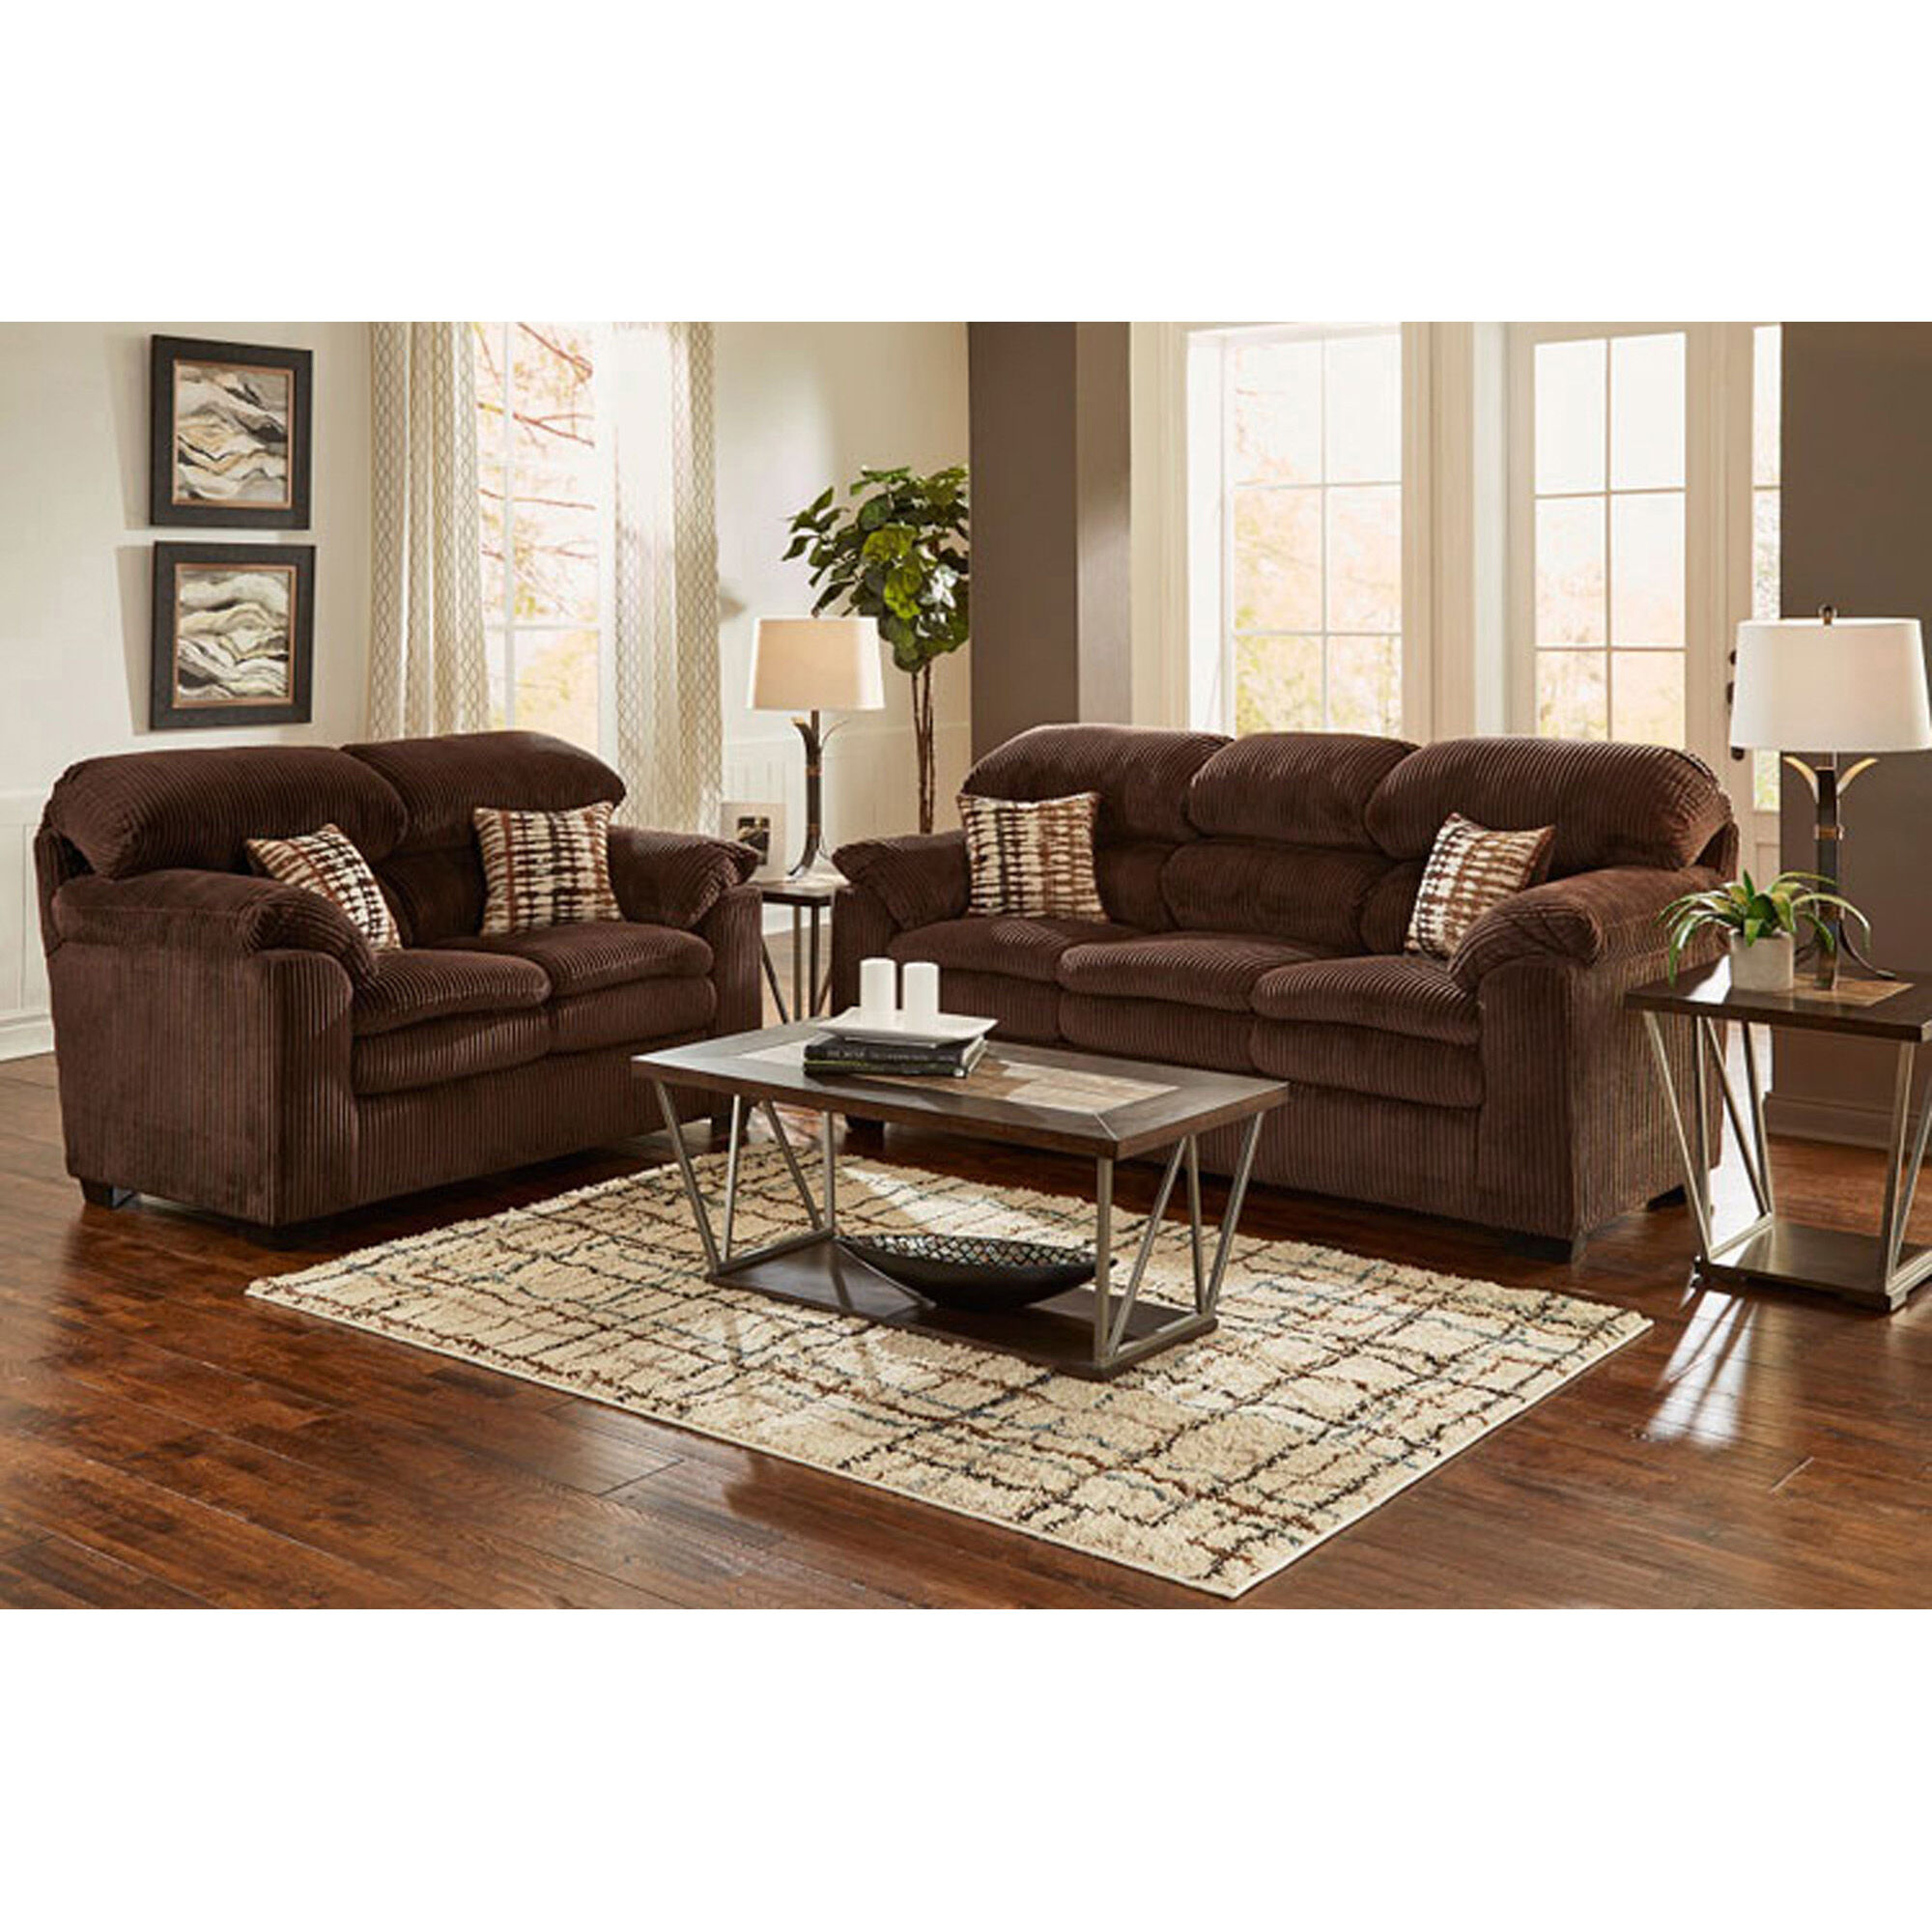 Perfect 7 Piece Birmingham Living Room Collection